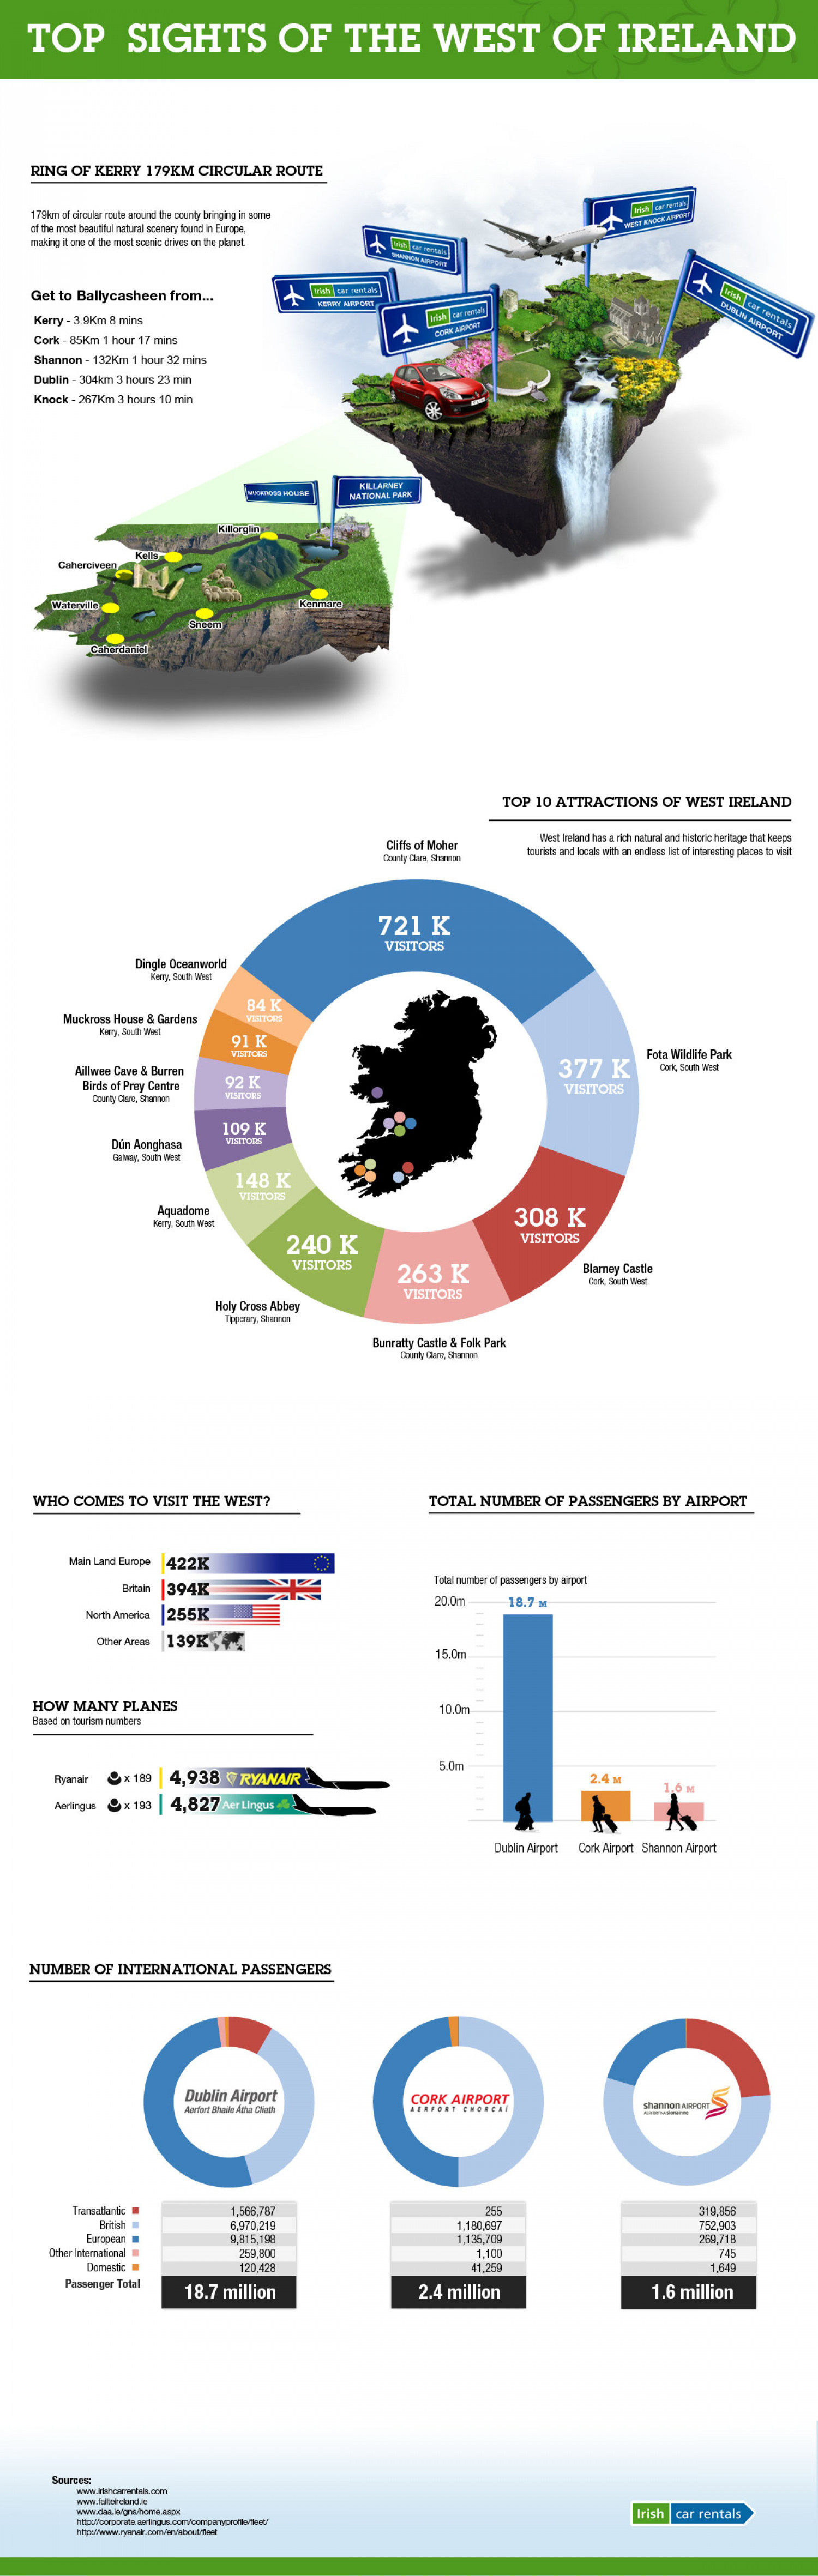 Top sights of the West of Ireland  Infographic